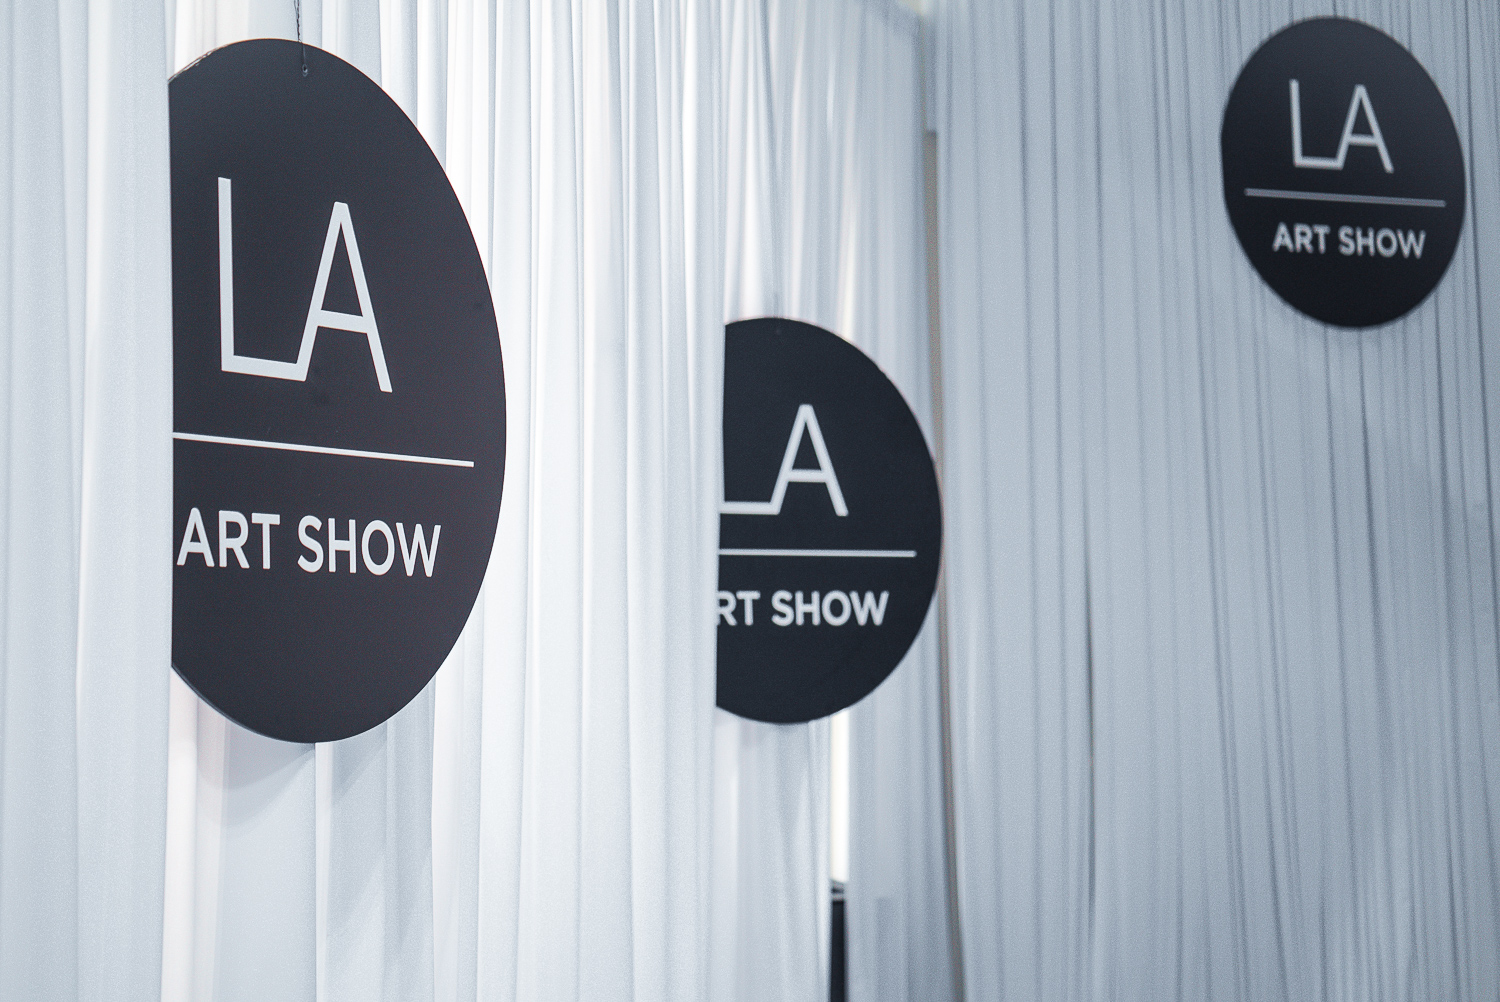 - More than 100 galleries from over 18 countries all in one place;the LA Art show is the biggest show of the year with a200,000 square feet venue allowing a one-of-a-kind experience.